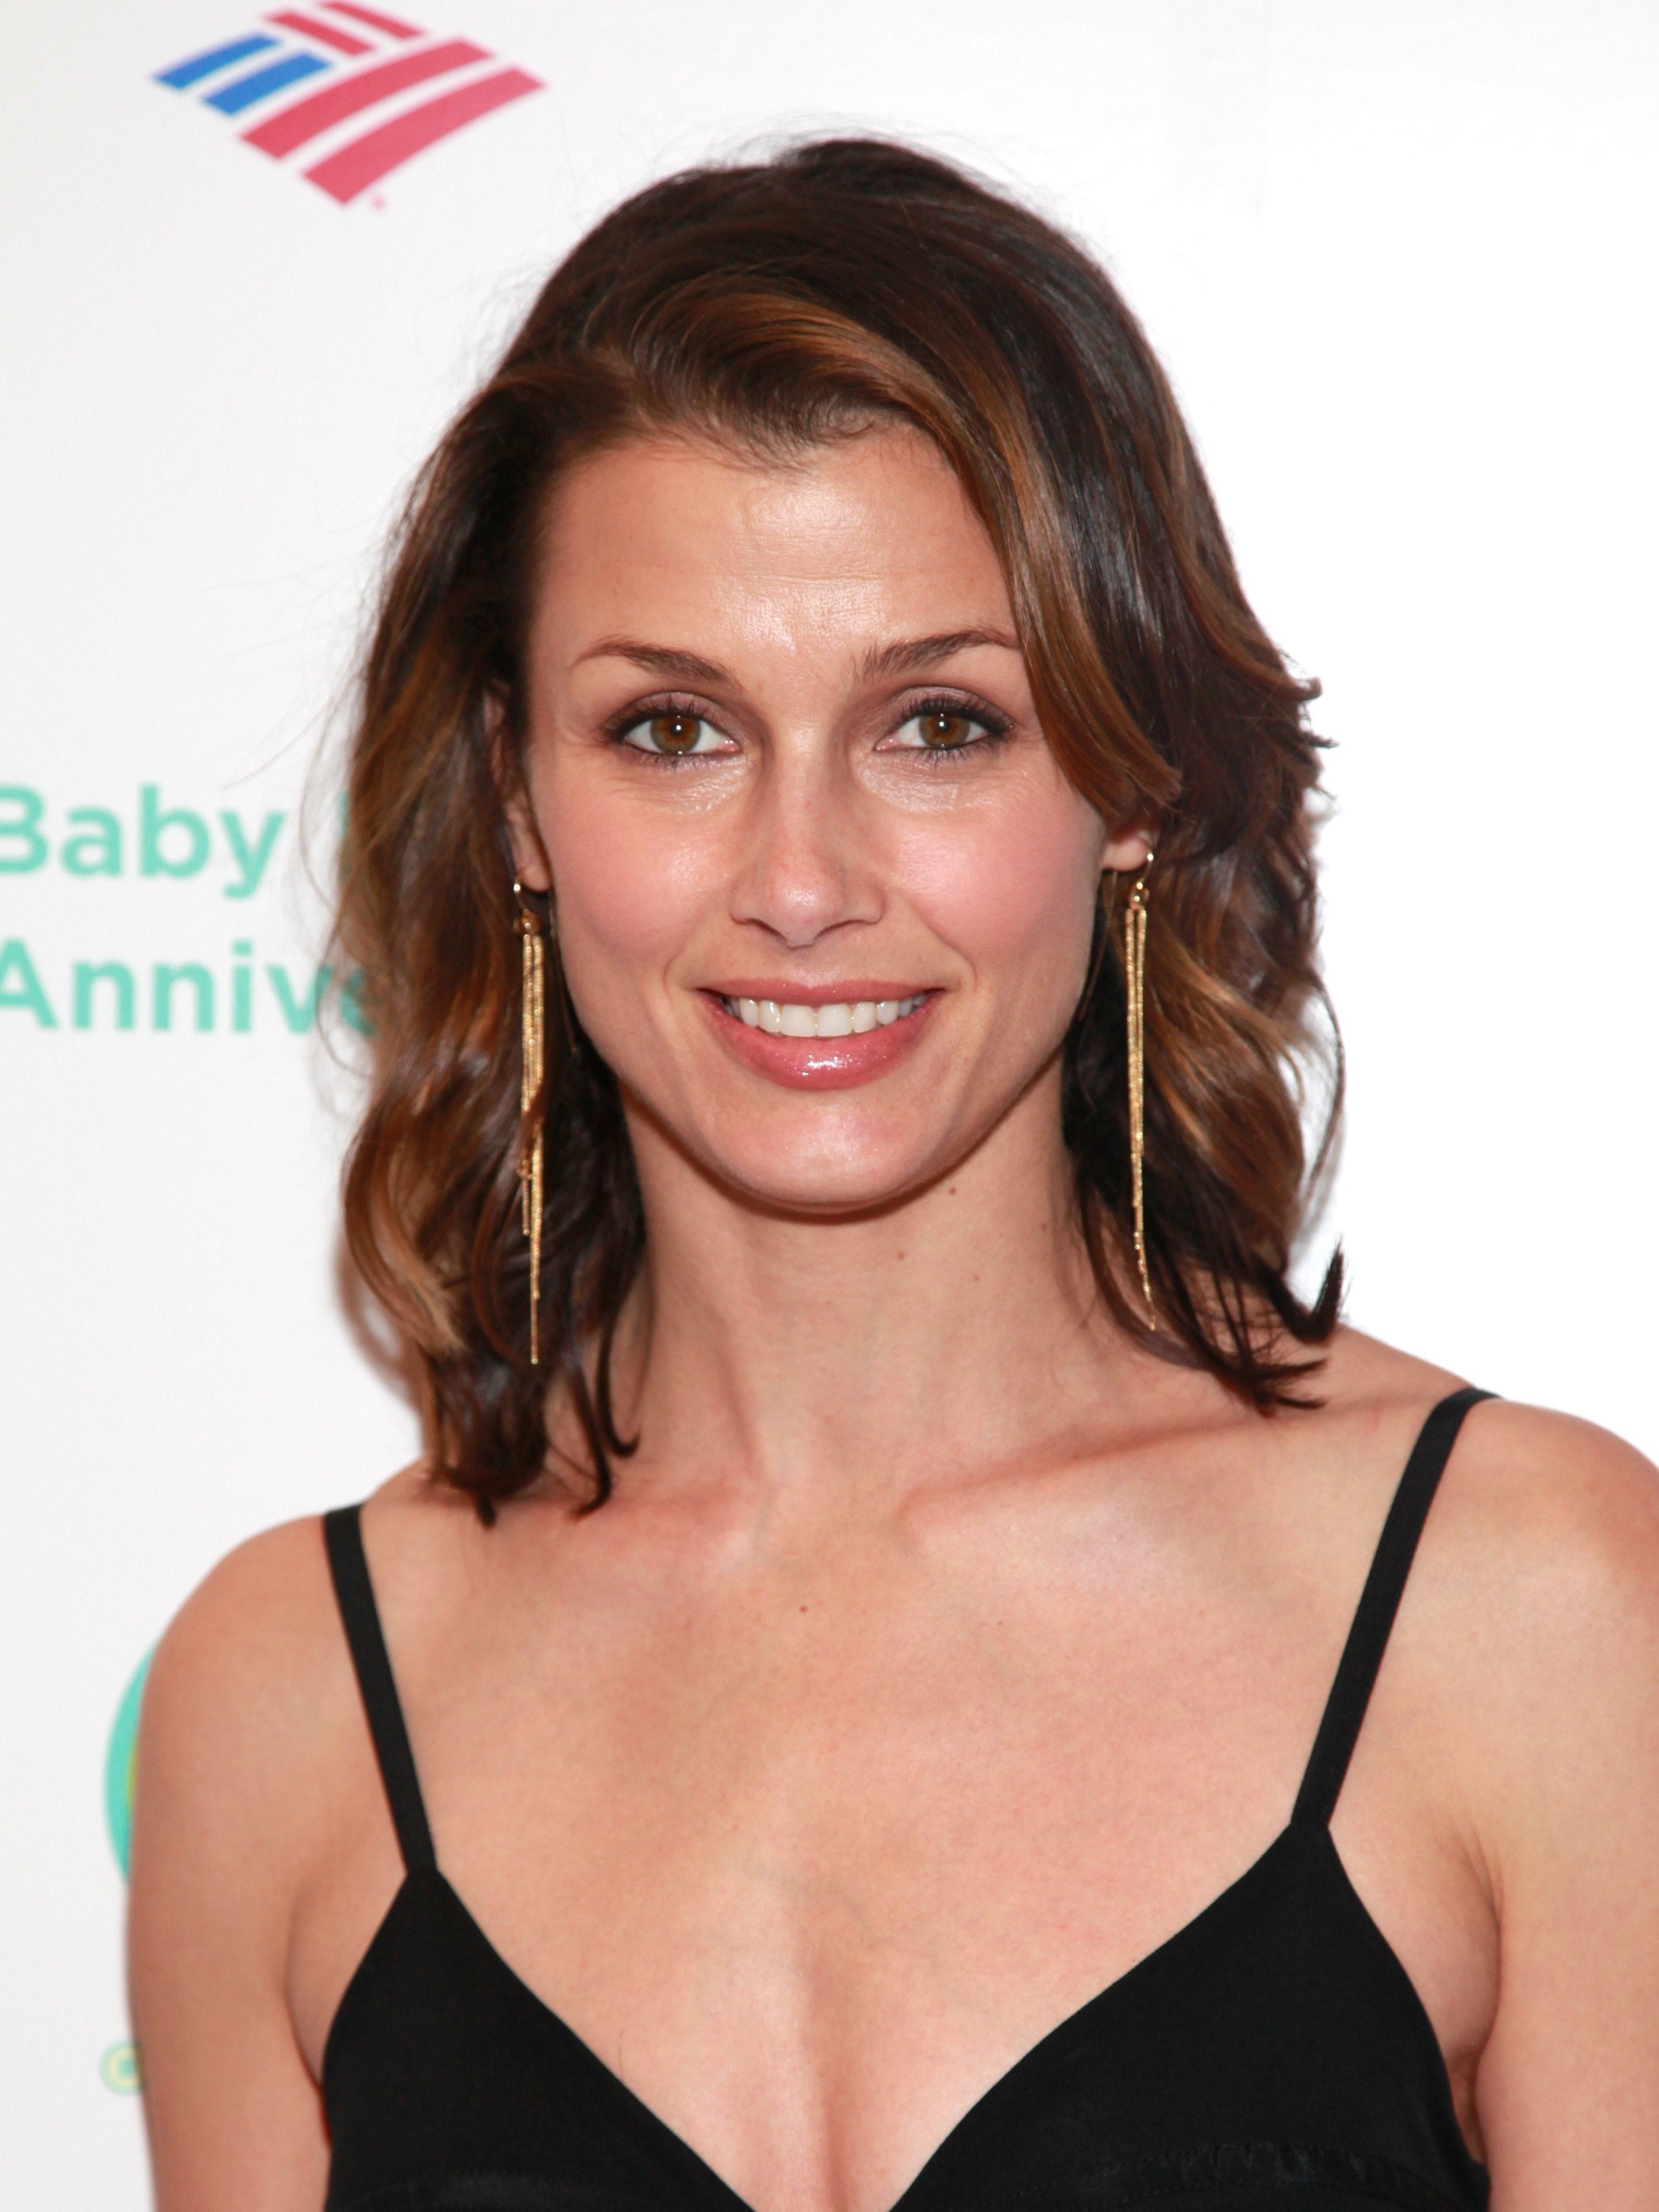 bridget moynahan net worth house car salary husband